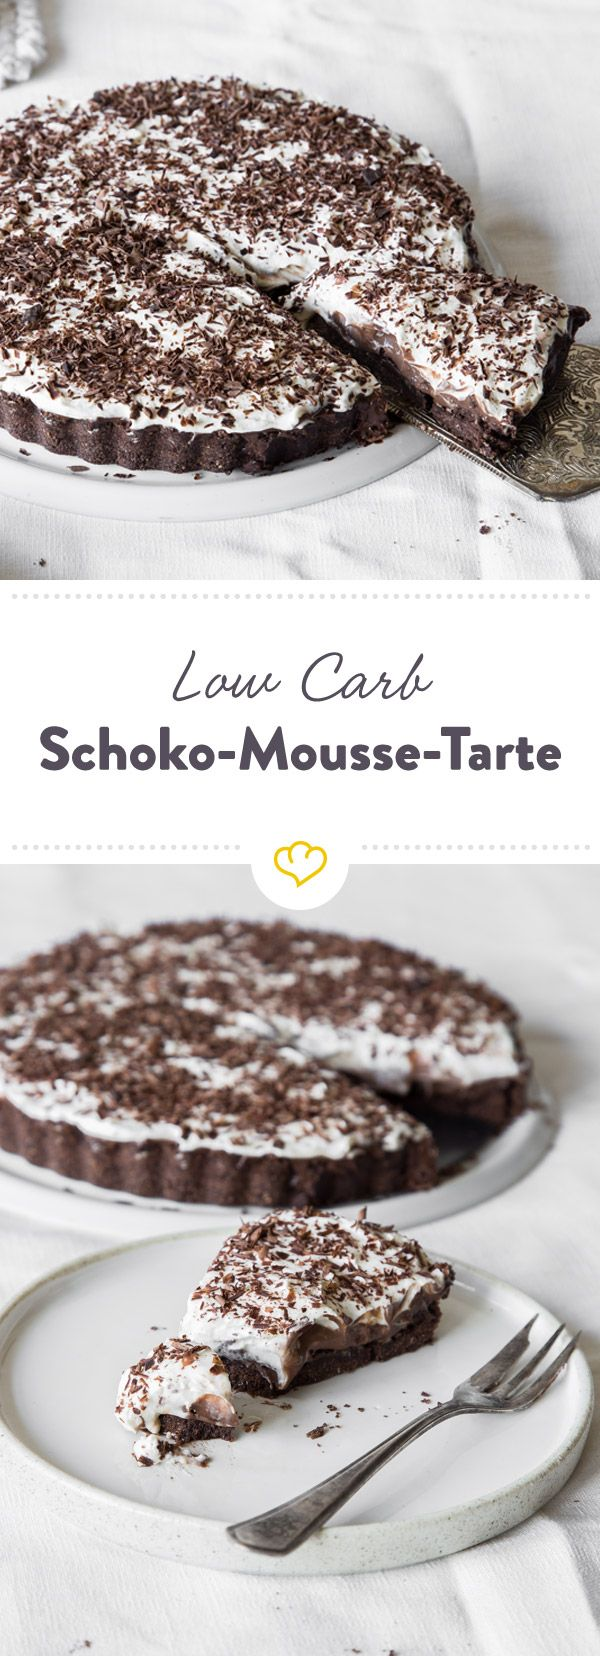 Photo of Low carb chocolate mousse tart without baking